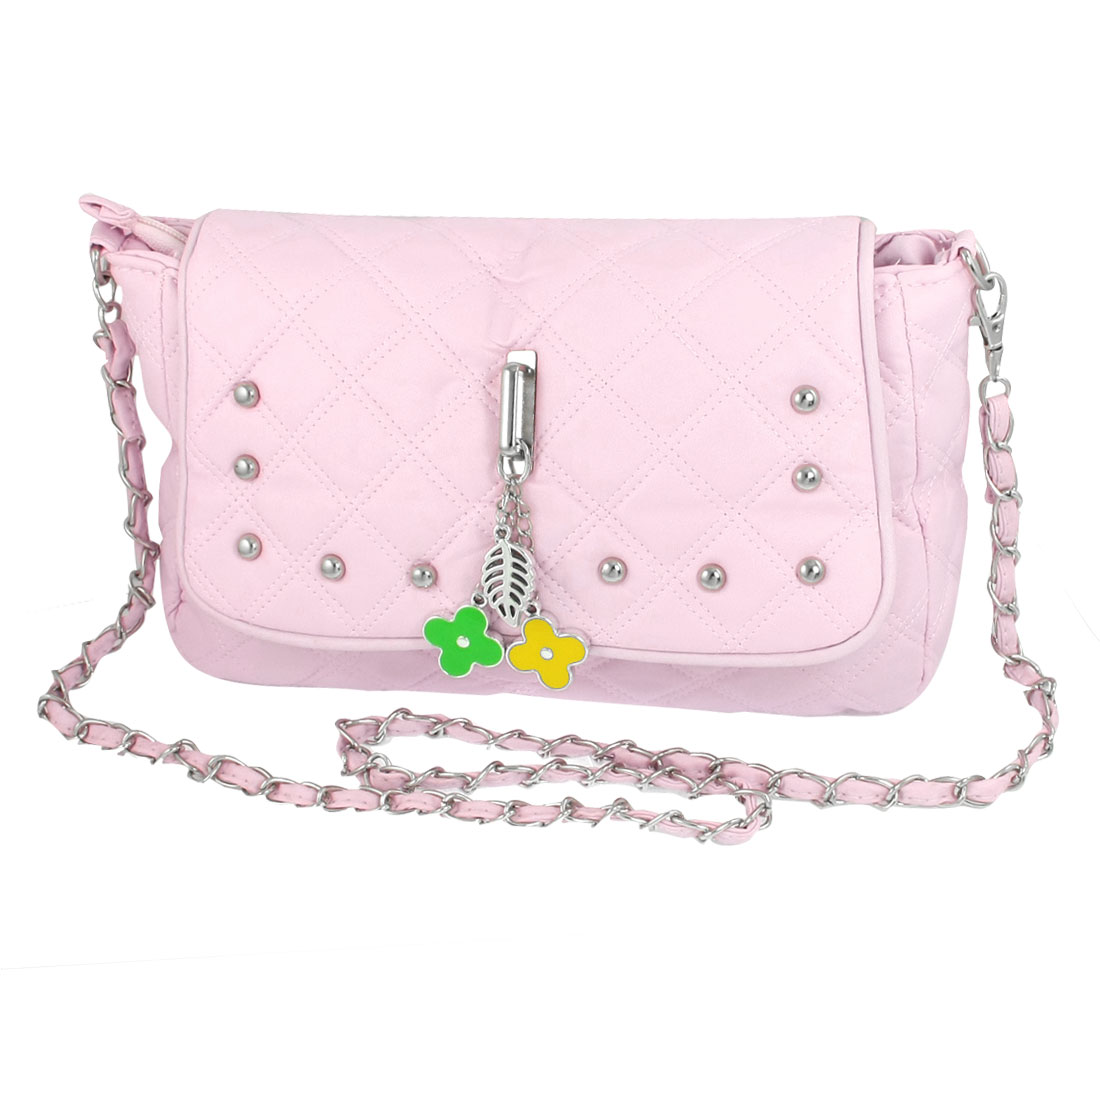 Ladies Nylon Lining Magnetic Flap Closure Light Pink Shoulder Handbag